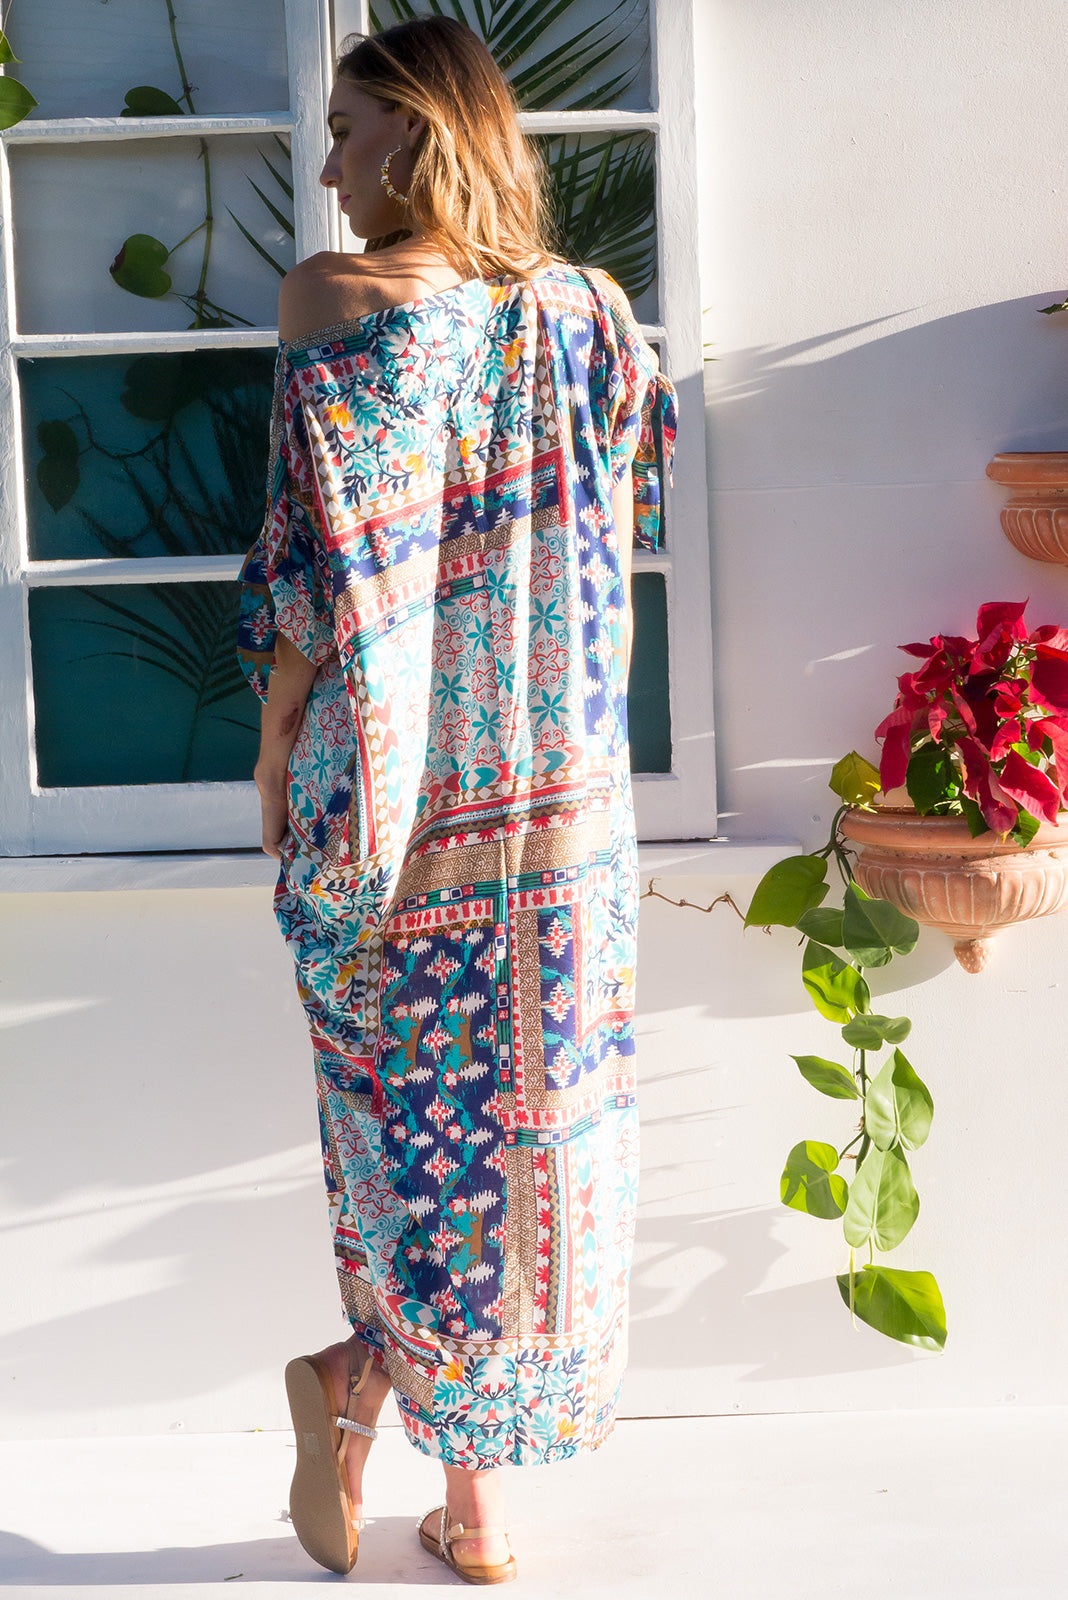 Sea Glass Caftan in a Mediterranean inspired print with split tie sleeve and diamante sparkle embellishment, plus size fashion, easy fit summer style